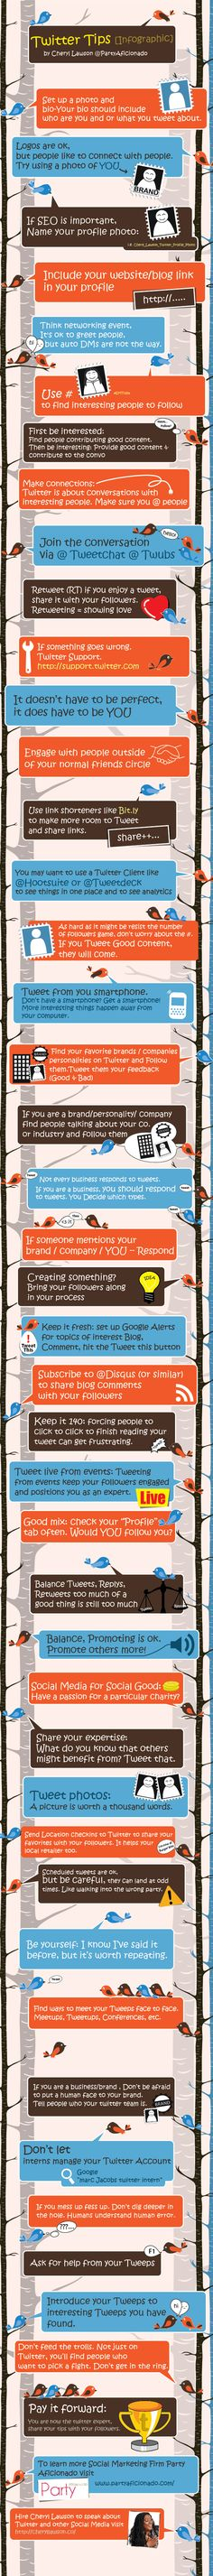 SocialChamps is an award-winning acclaimed digital marketing agency in India. Being a focused Social Media Agency; Reach us for results-driven SEM, SMM, SEO & Content Marketing services. Inbound Marketing, Marketing Digital, Internet Marketing, Online Marketing, Social Media Marketing, Marketing Ideas, About Twitter, New Twitter, Web 2.0